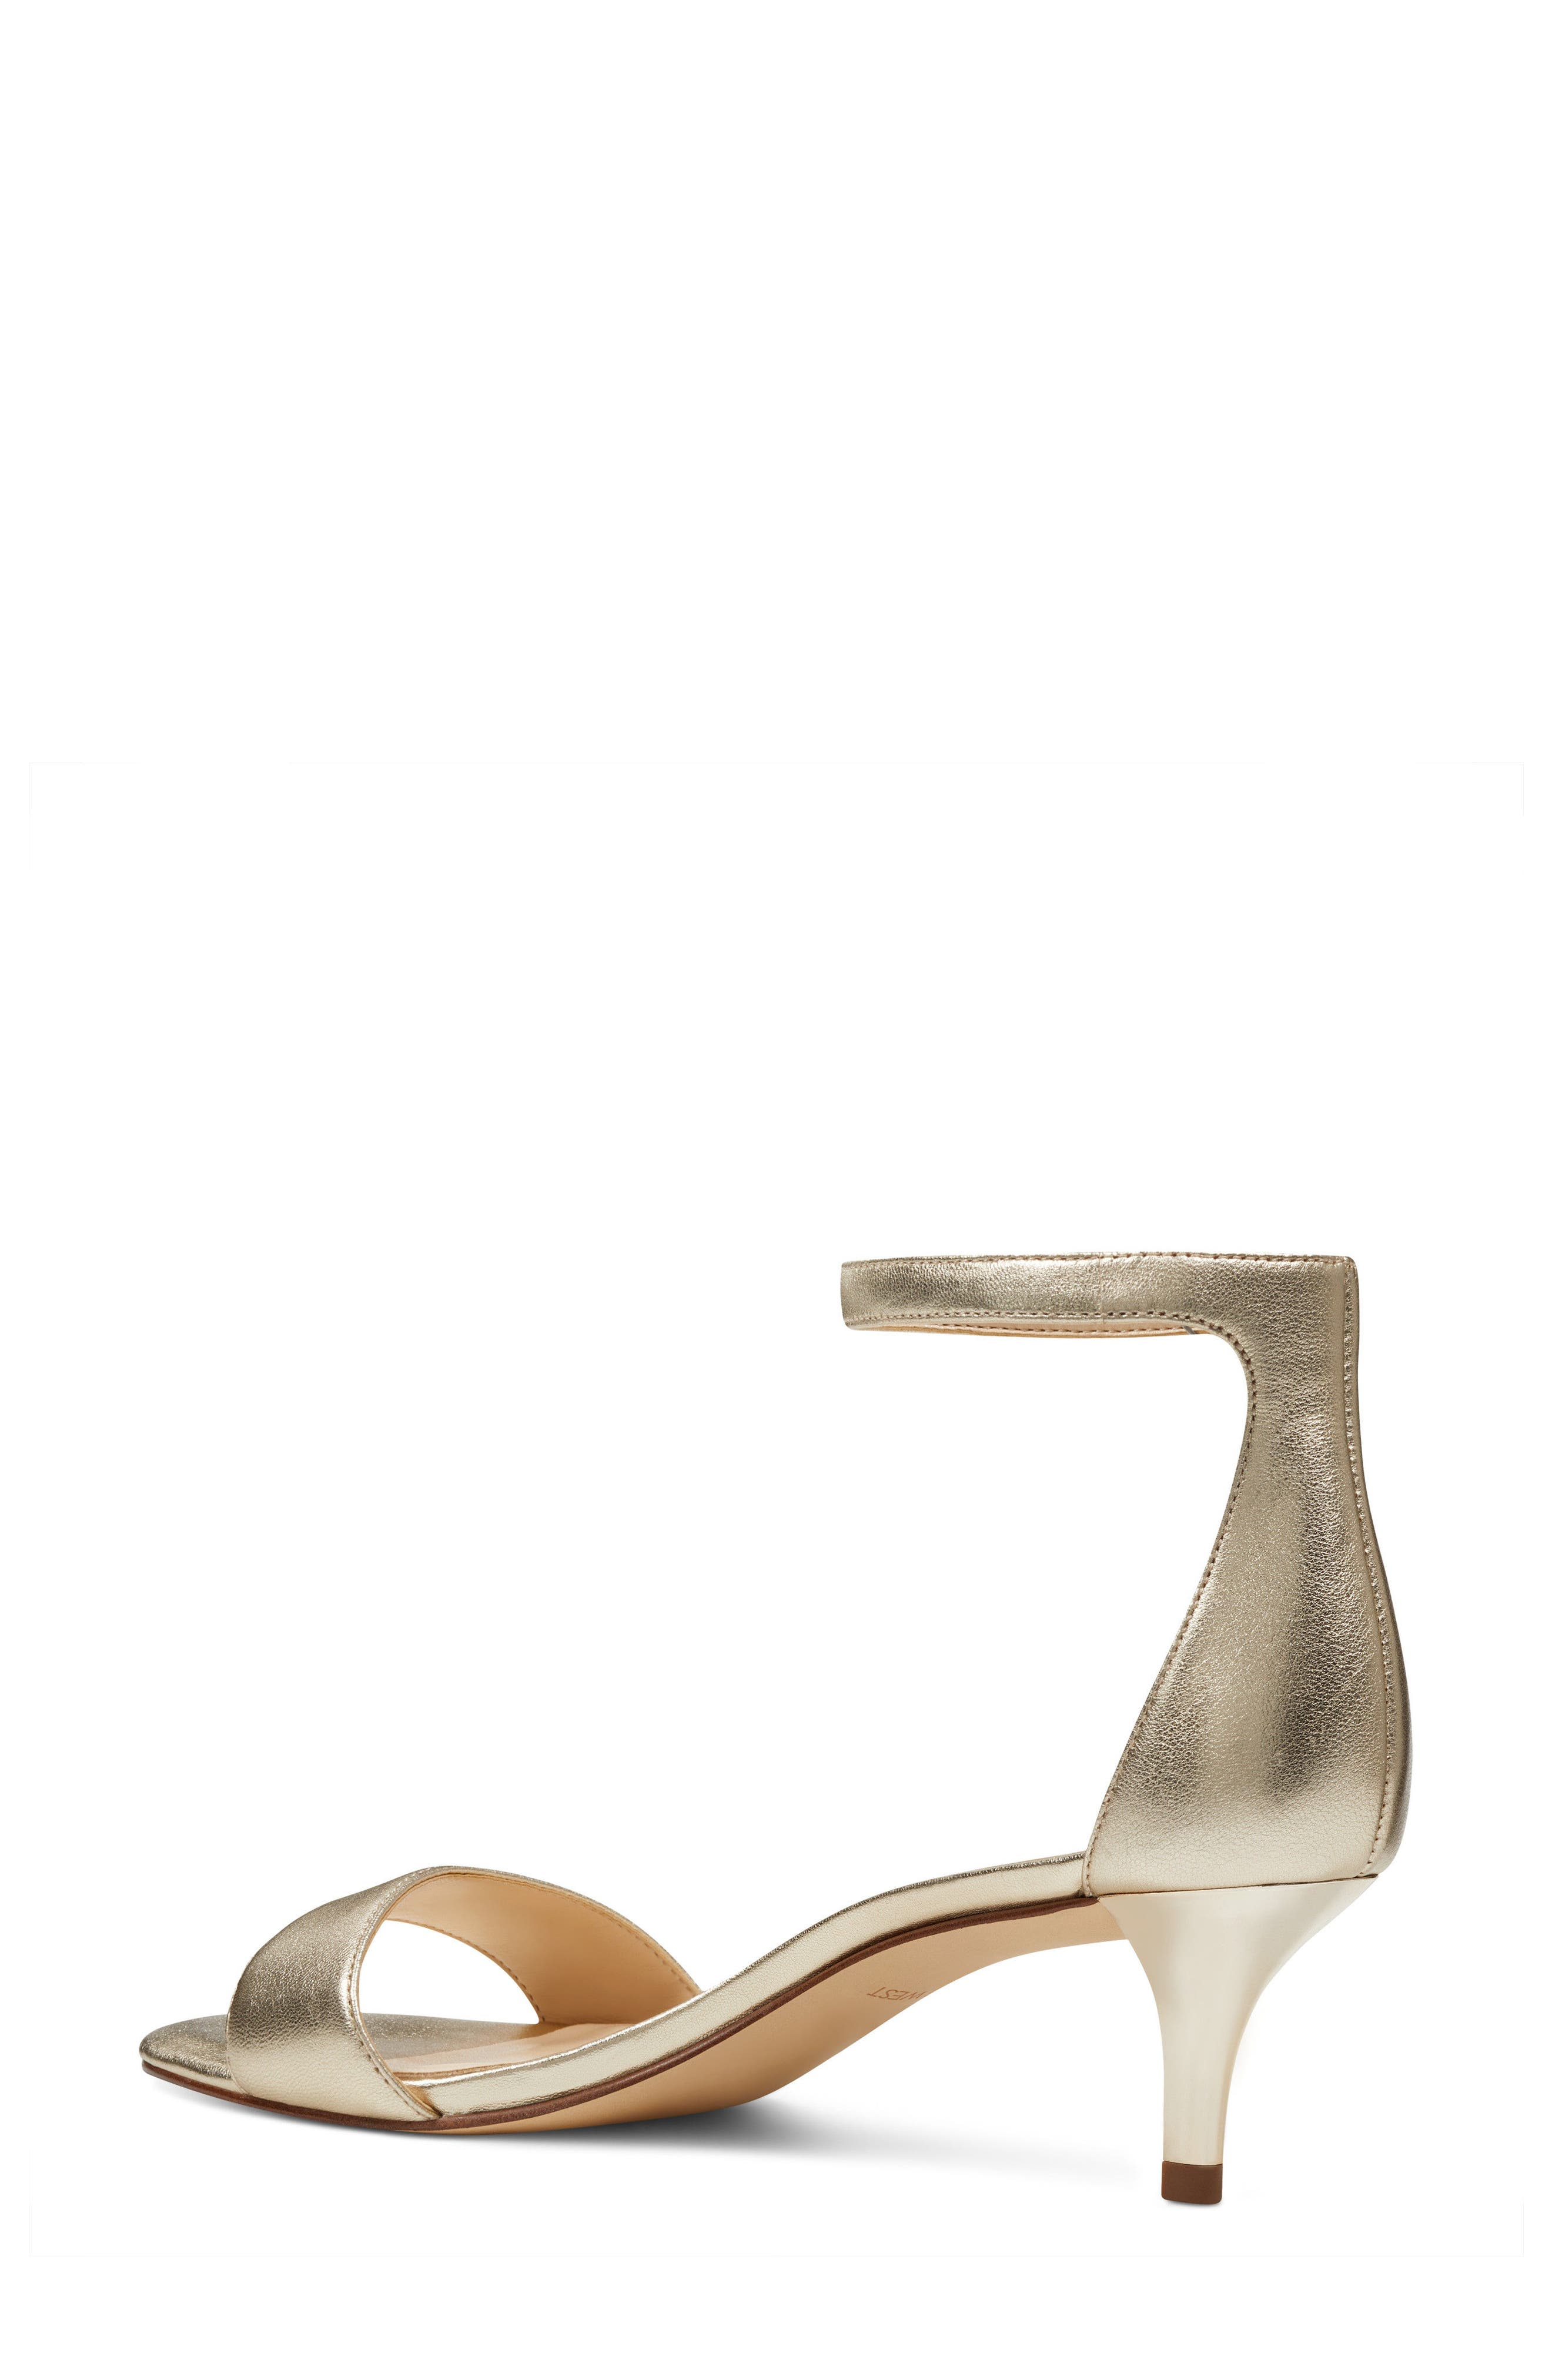 'Leisa' Ankle Strap Sandal,                             Alternate thumbnail 2, color,                             711